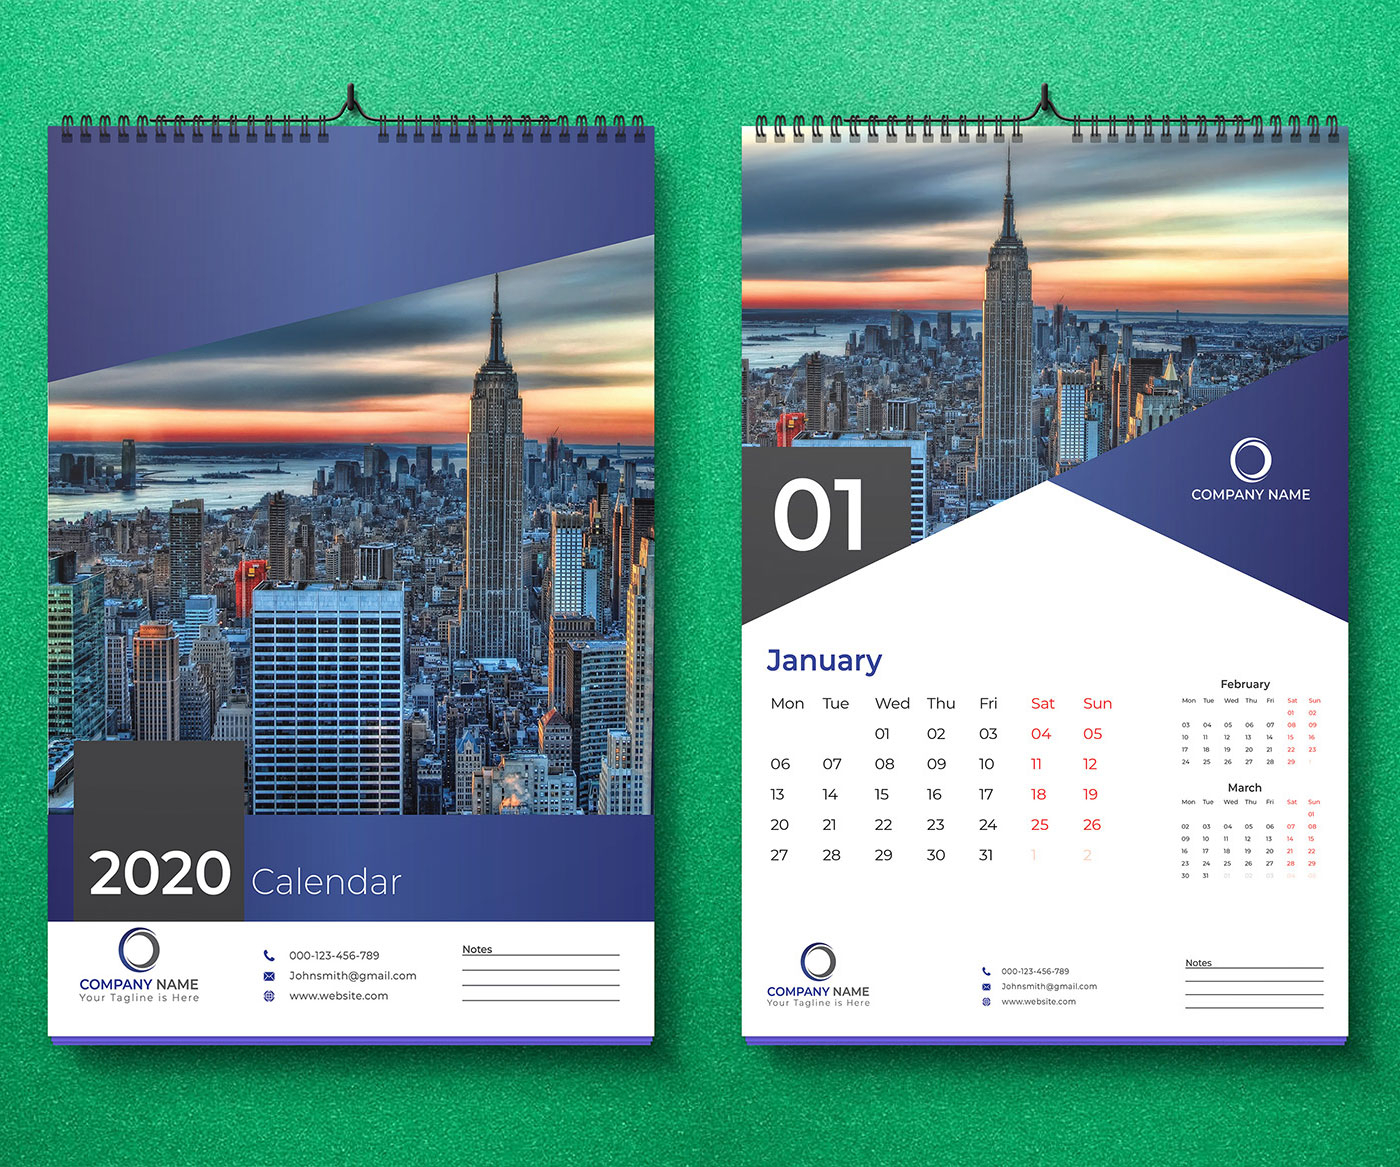 Take Calendar 2020 Ideas